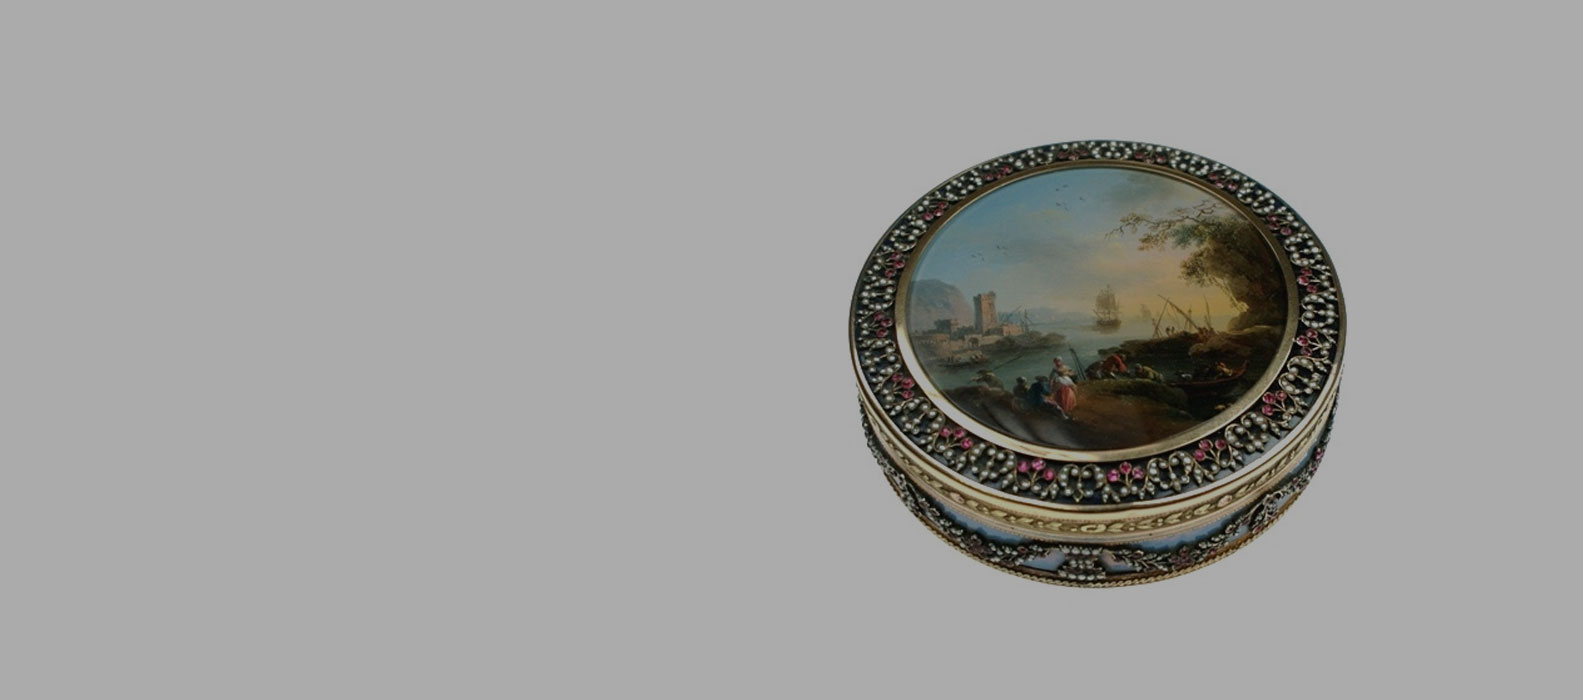 Gold and Enamel Boxes